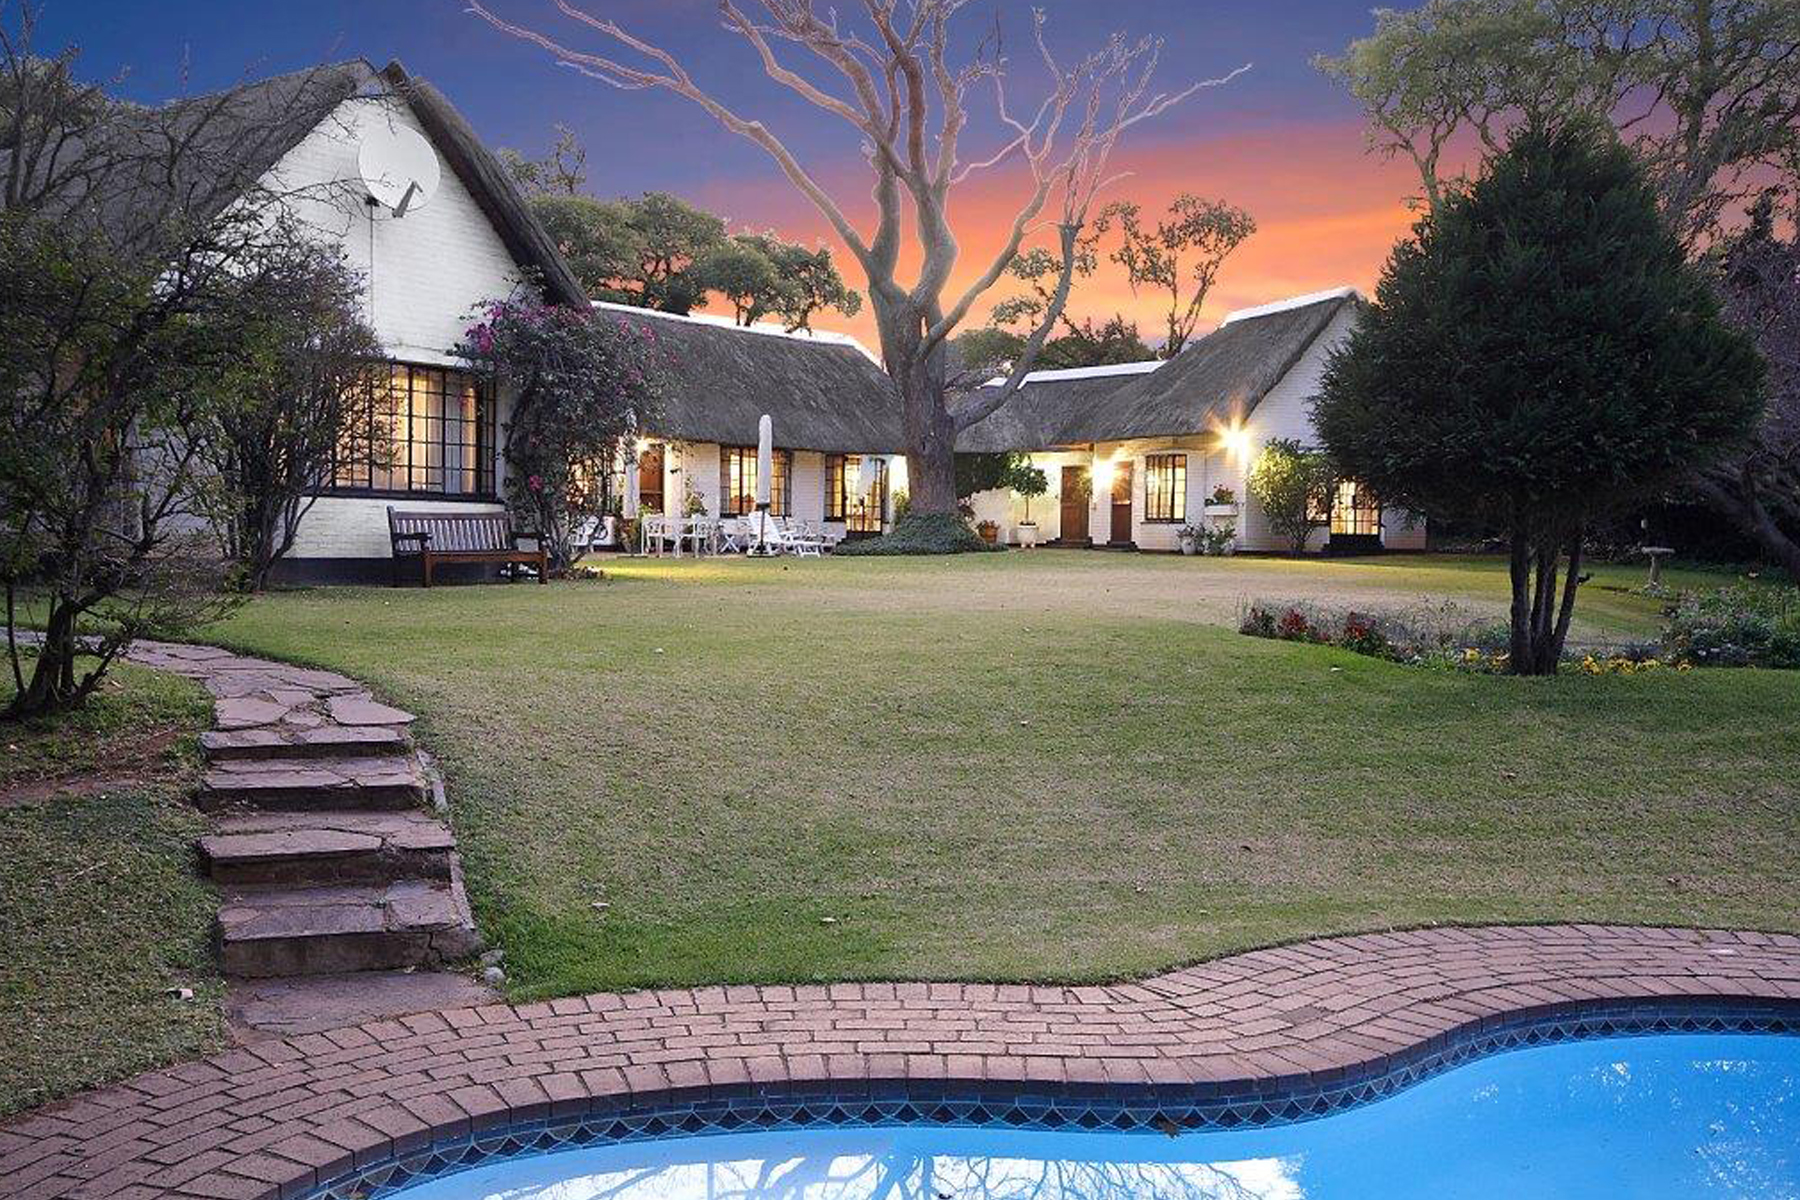 Multi-Family Home for Sale at Farm thatch house with cottage on 3,000 sqm Johannesburg, Gauteng 2196 South Africa